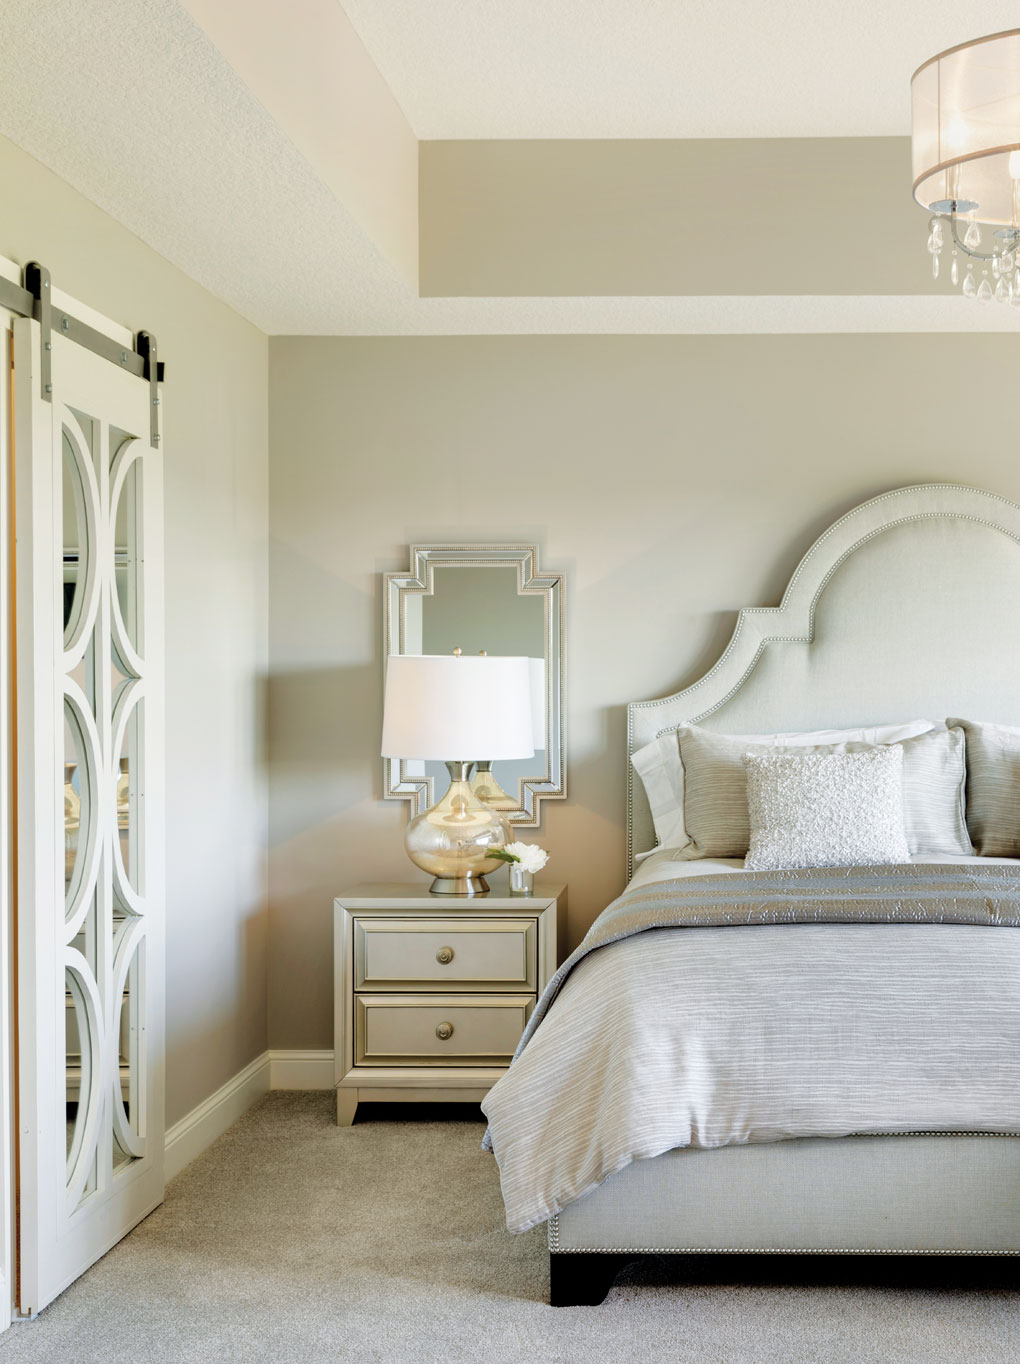 A master bedroom with a large bed and chandelier hanging overhead. Adjacent is a walk-in closet with sliding door.